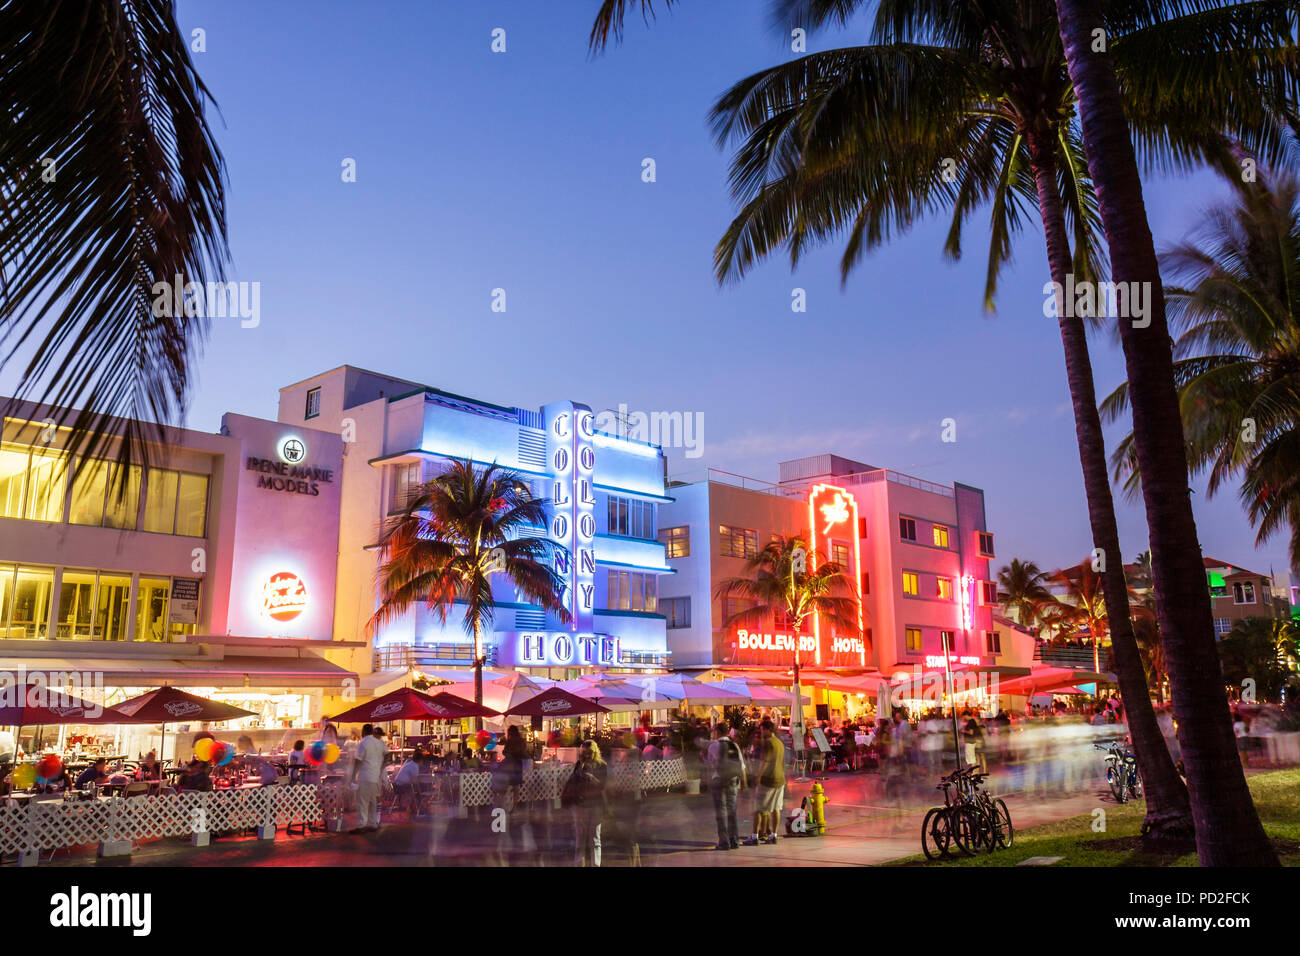 Miami Beach Florida Art Deco District Ocean Drive New Years Eve Night Nightlife Alfresco Dining Colony Hotel Restaurants Land